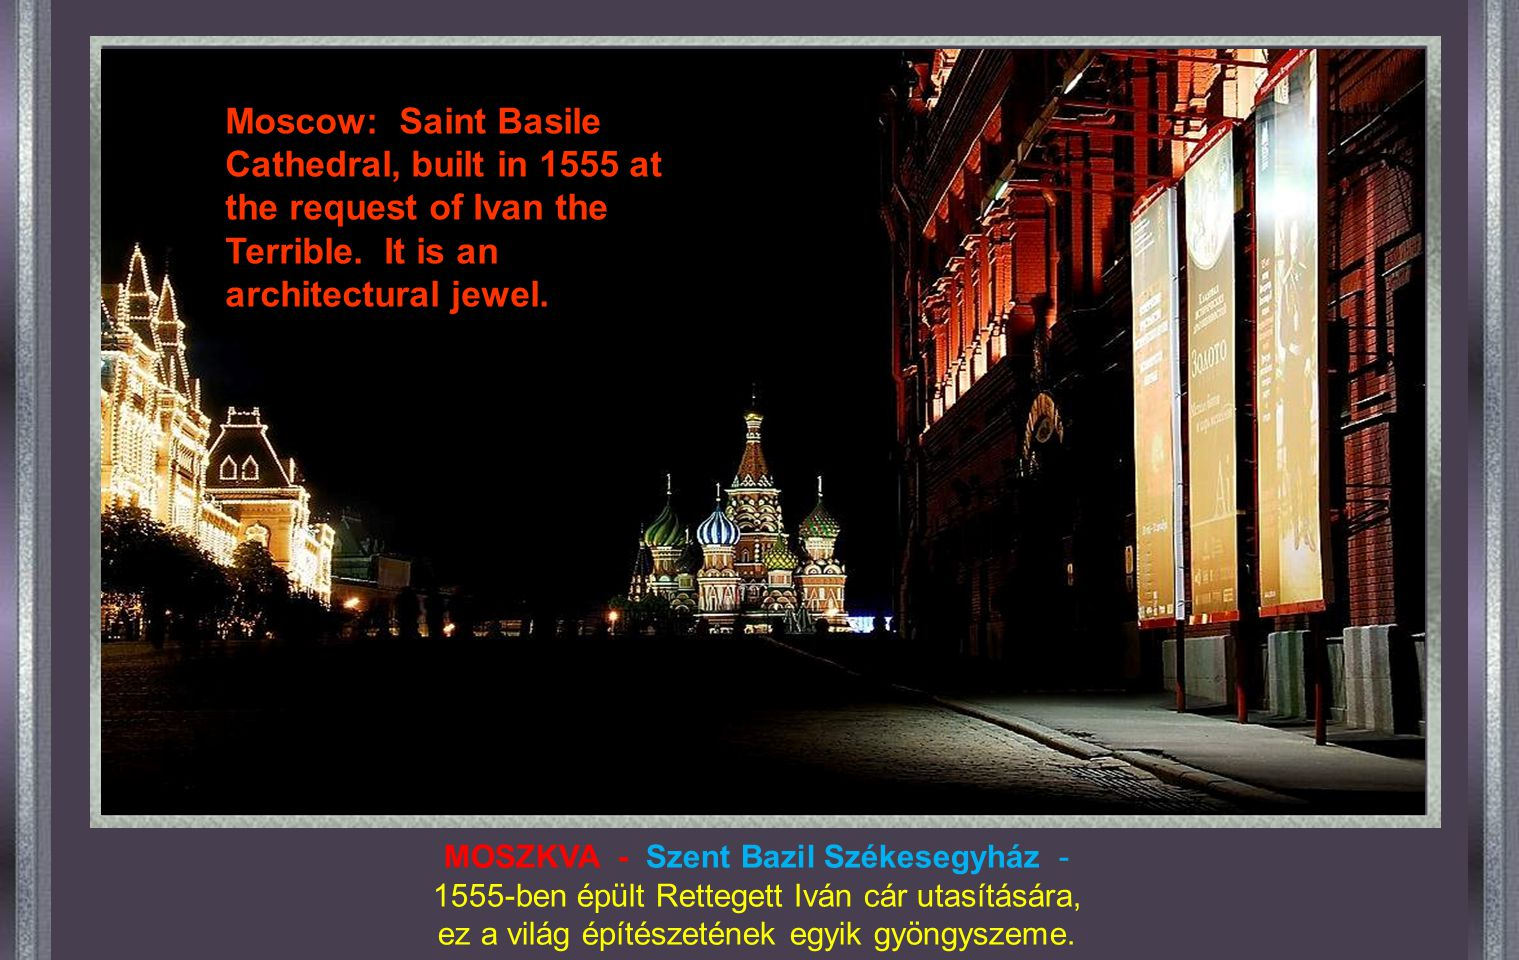 Moscow: Saint Basile Cathedral, built in 1555 at the request of Ivan the Terrible. It is an architectural jewel.